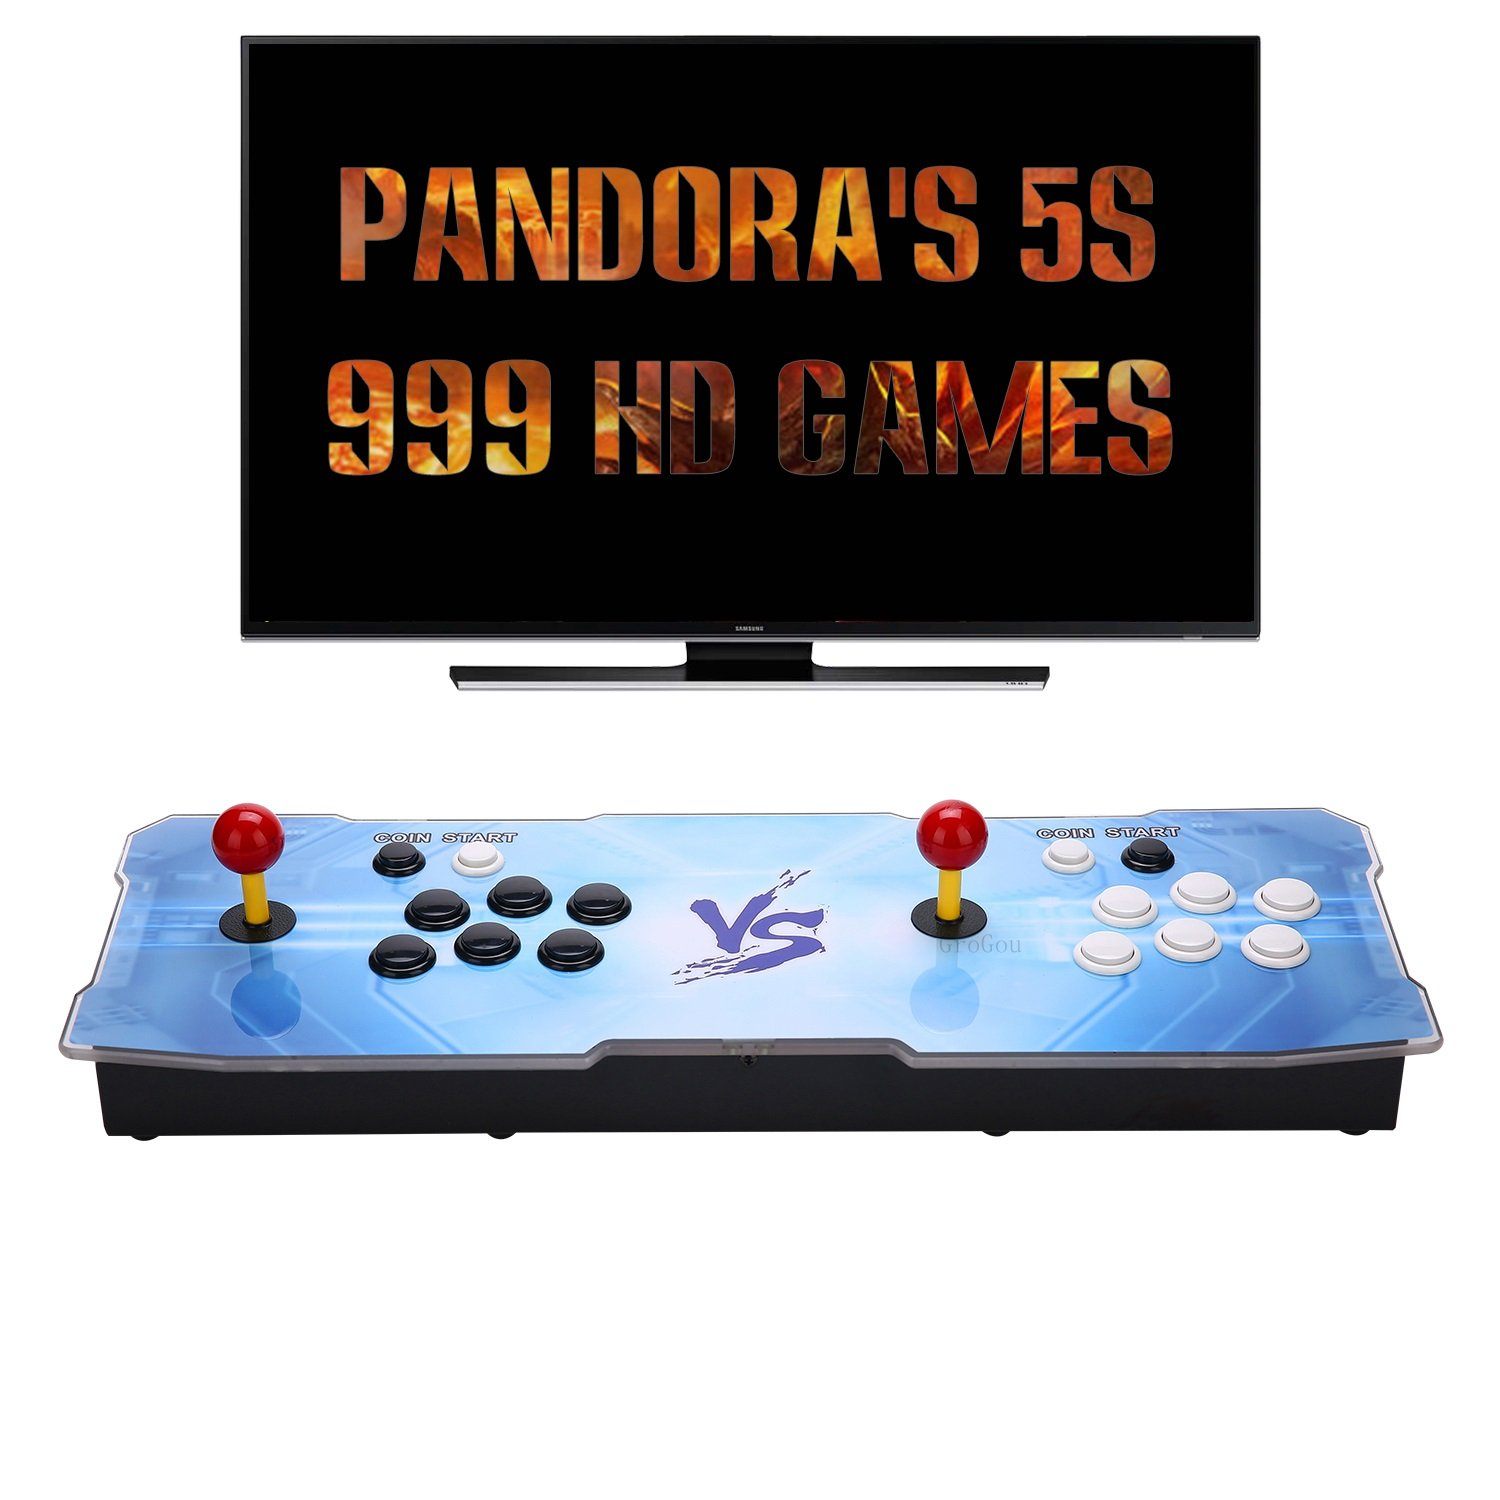 [999 HD Arcade Games] GroGou Arcade Video Game Console 999 Retro Games Pandora's Box 5s Plus Arcade Machine Double Arcade Joystick Built-in Speaker